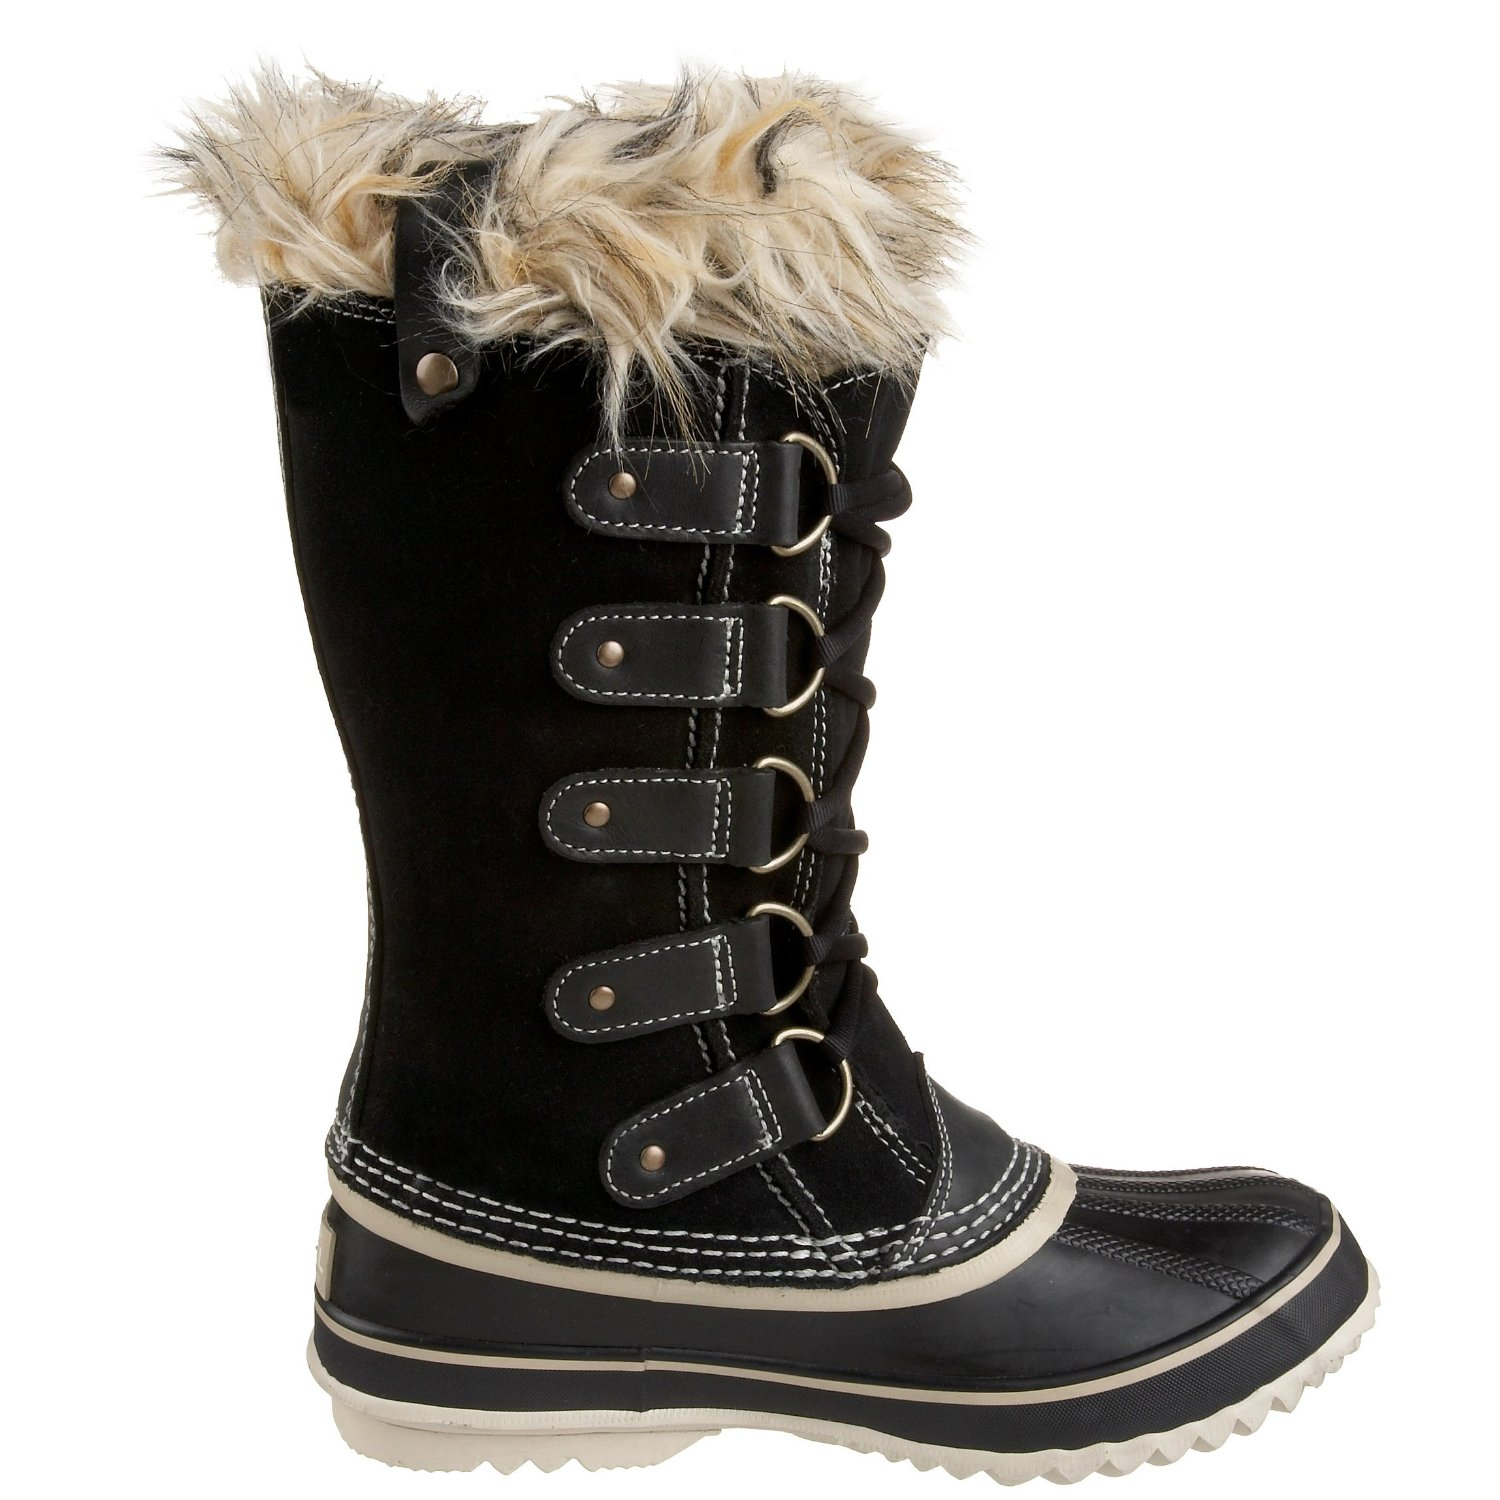 Most Popular Boots For Women - Boot Hto